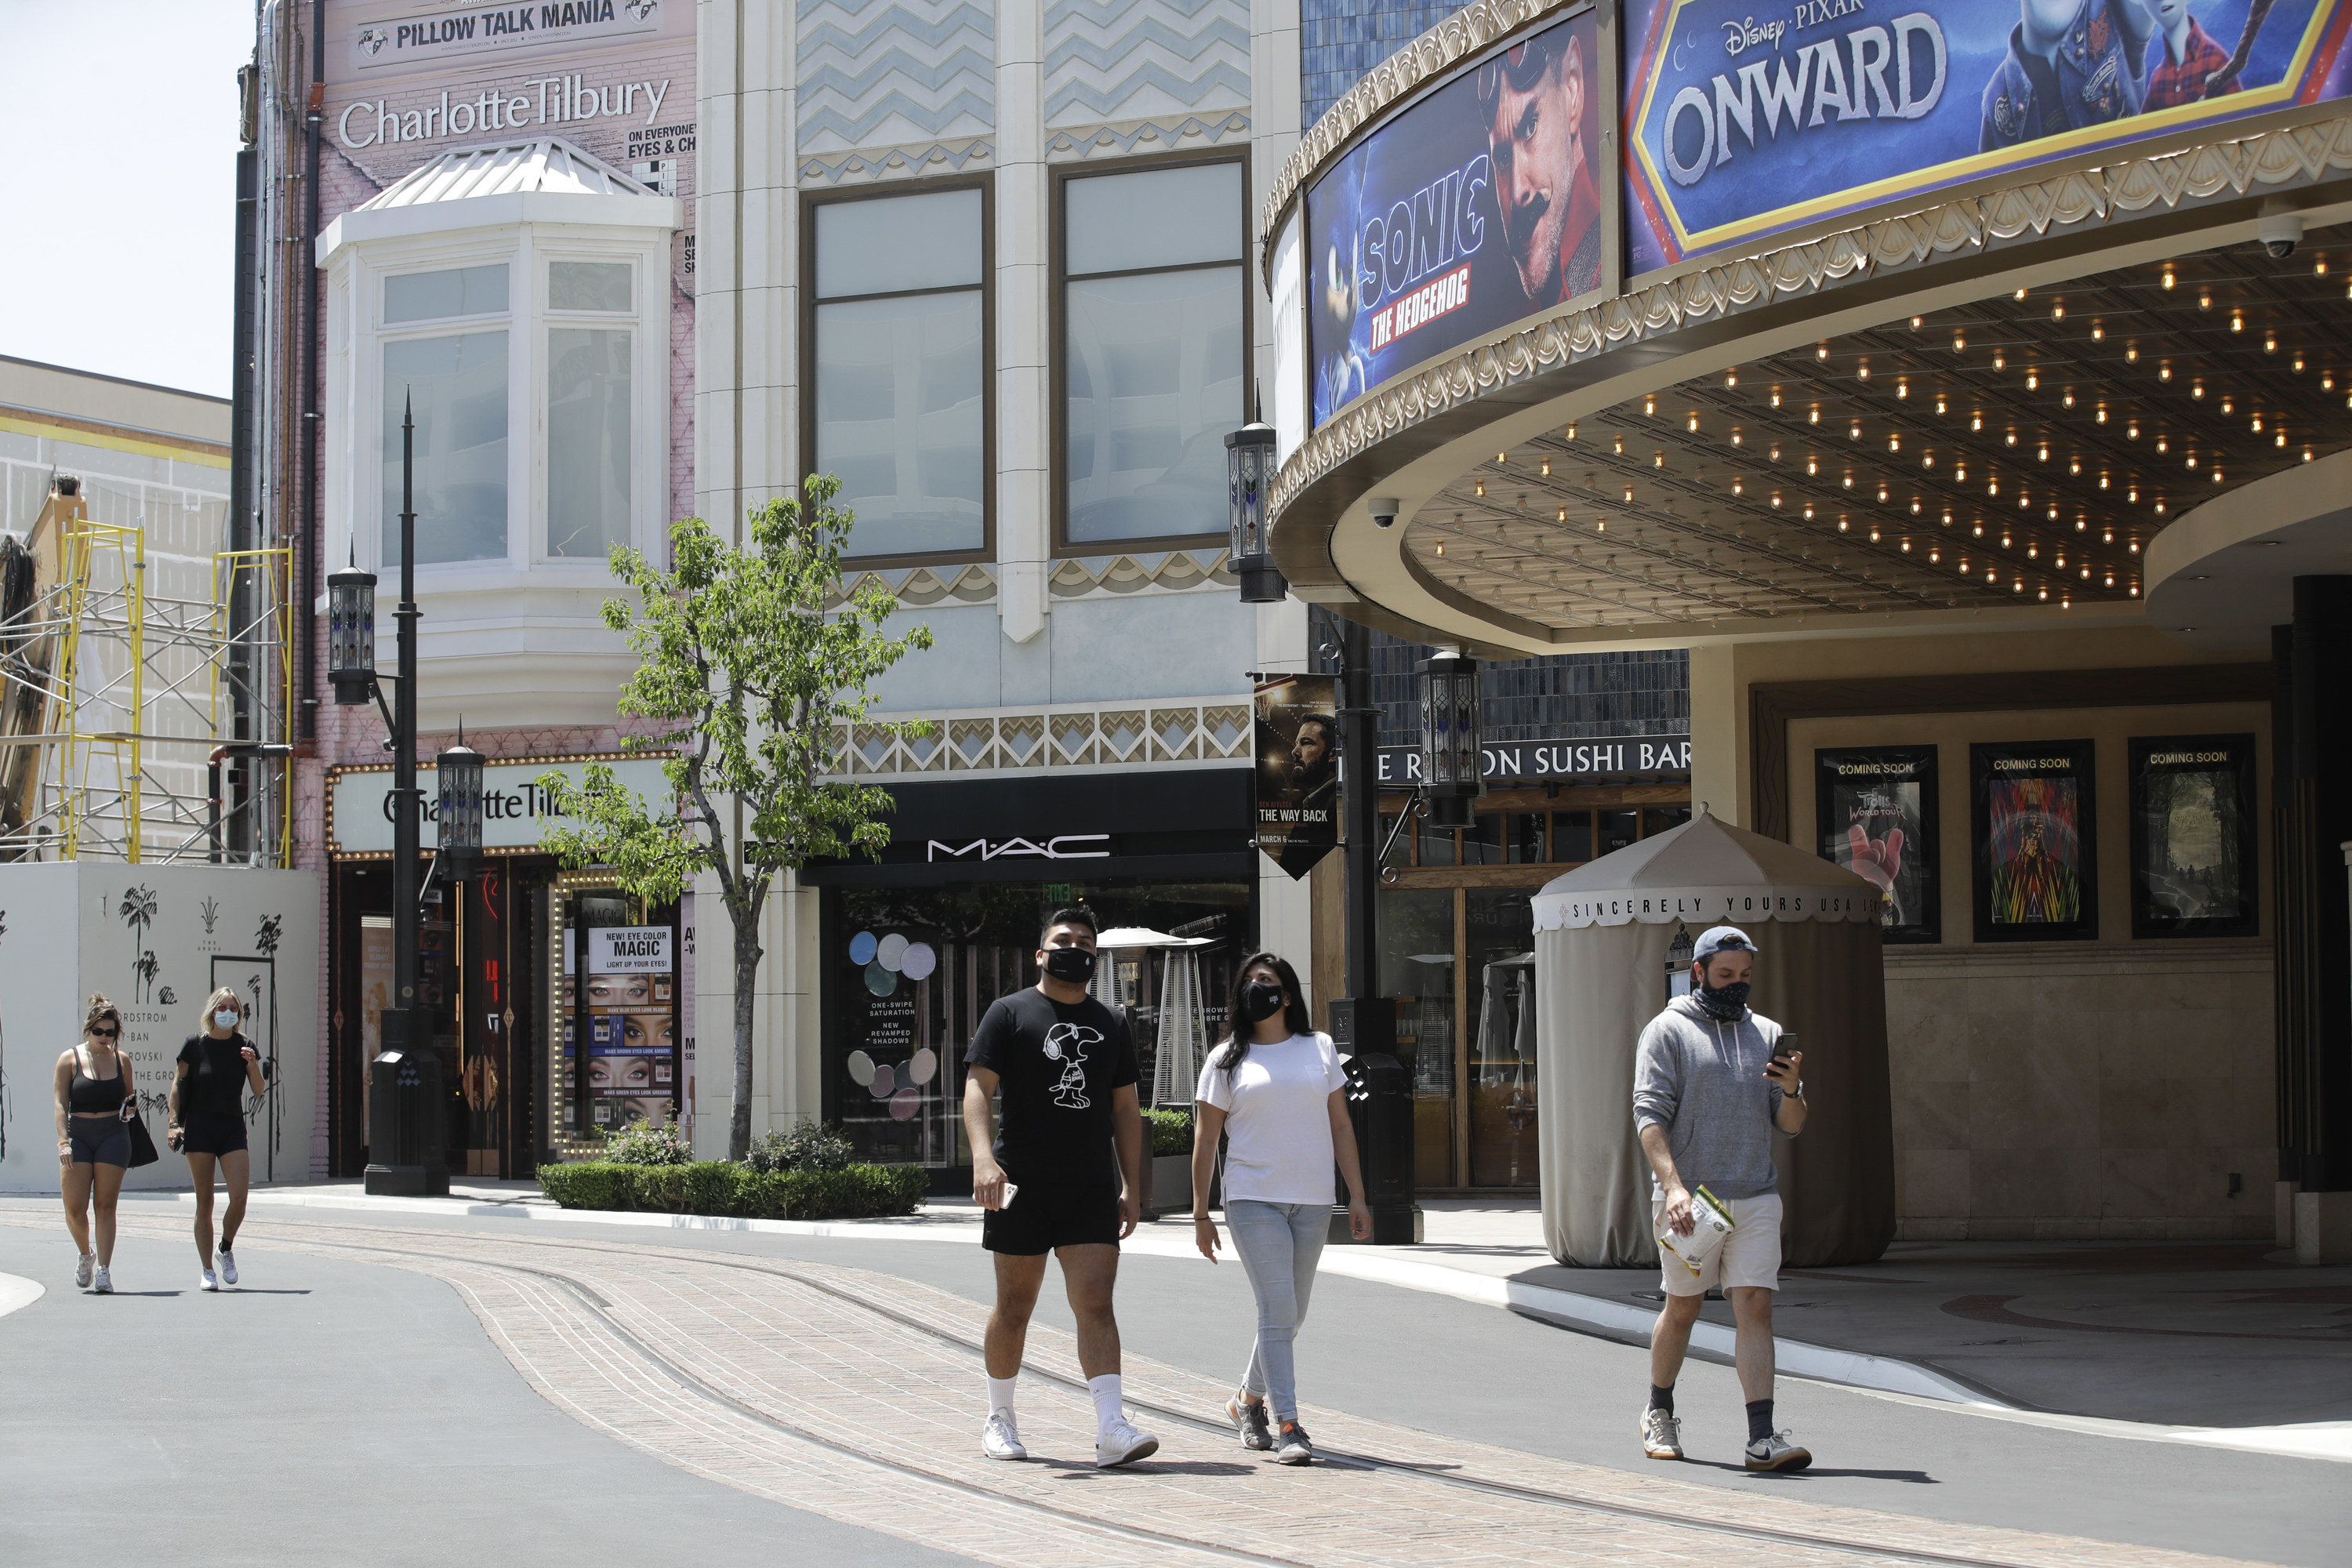 Five people, most wearing masks, walk down an otherwise empty outdoor street at the Grove outdoor mall